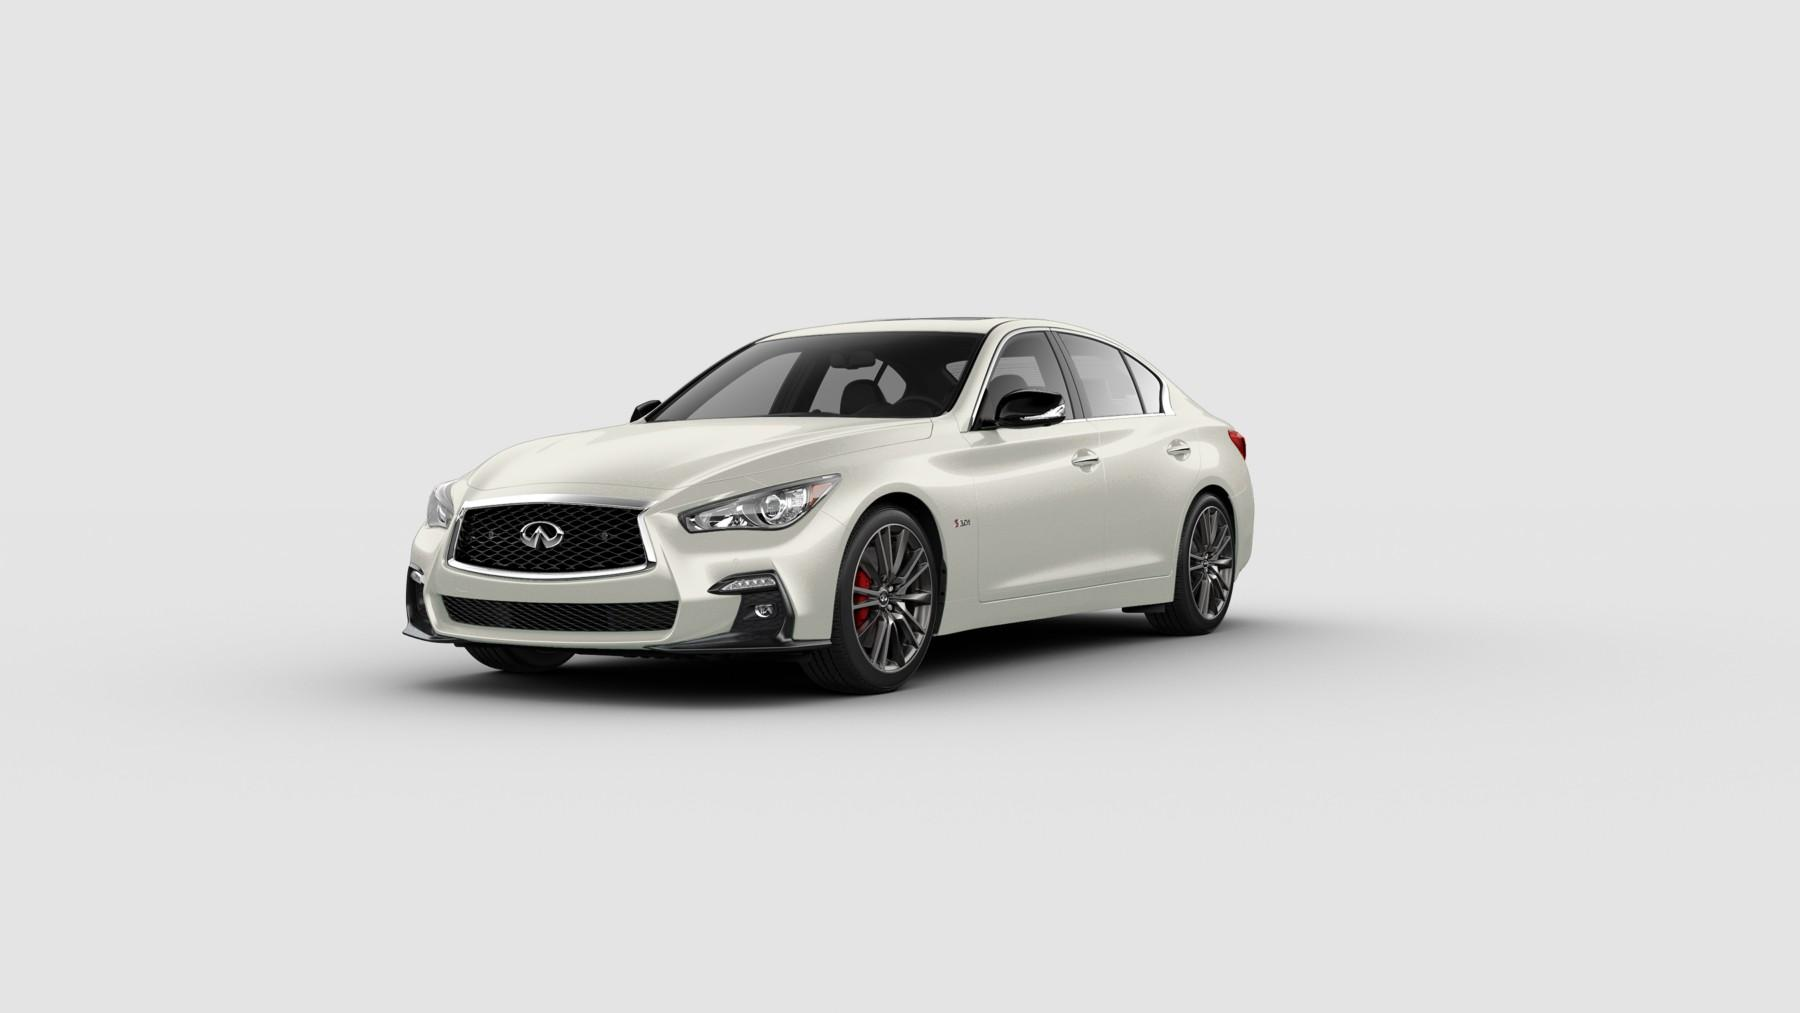 2019 INFINITI Q50 Vehicle Photo in Willow Grove, PA 19090